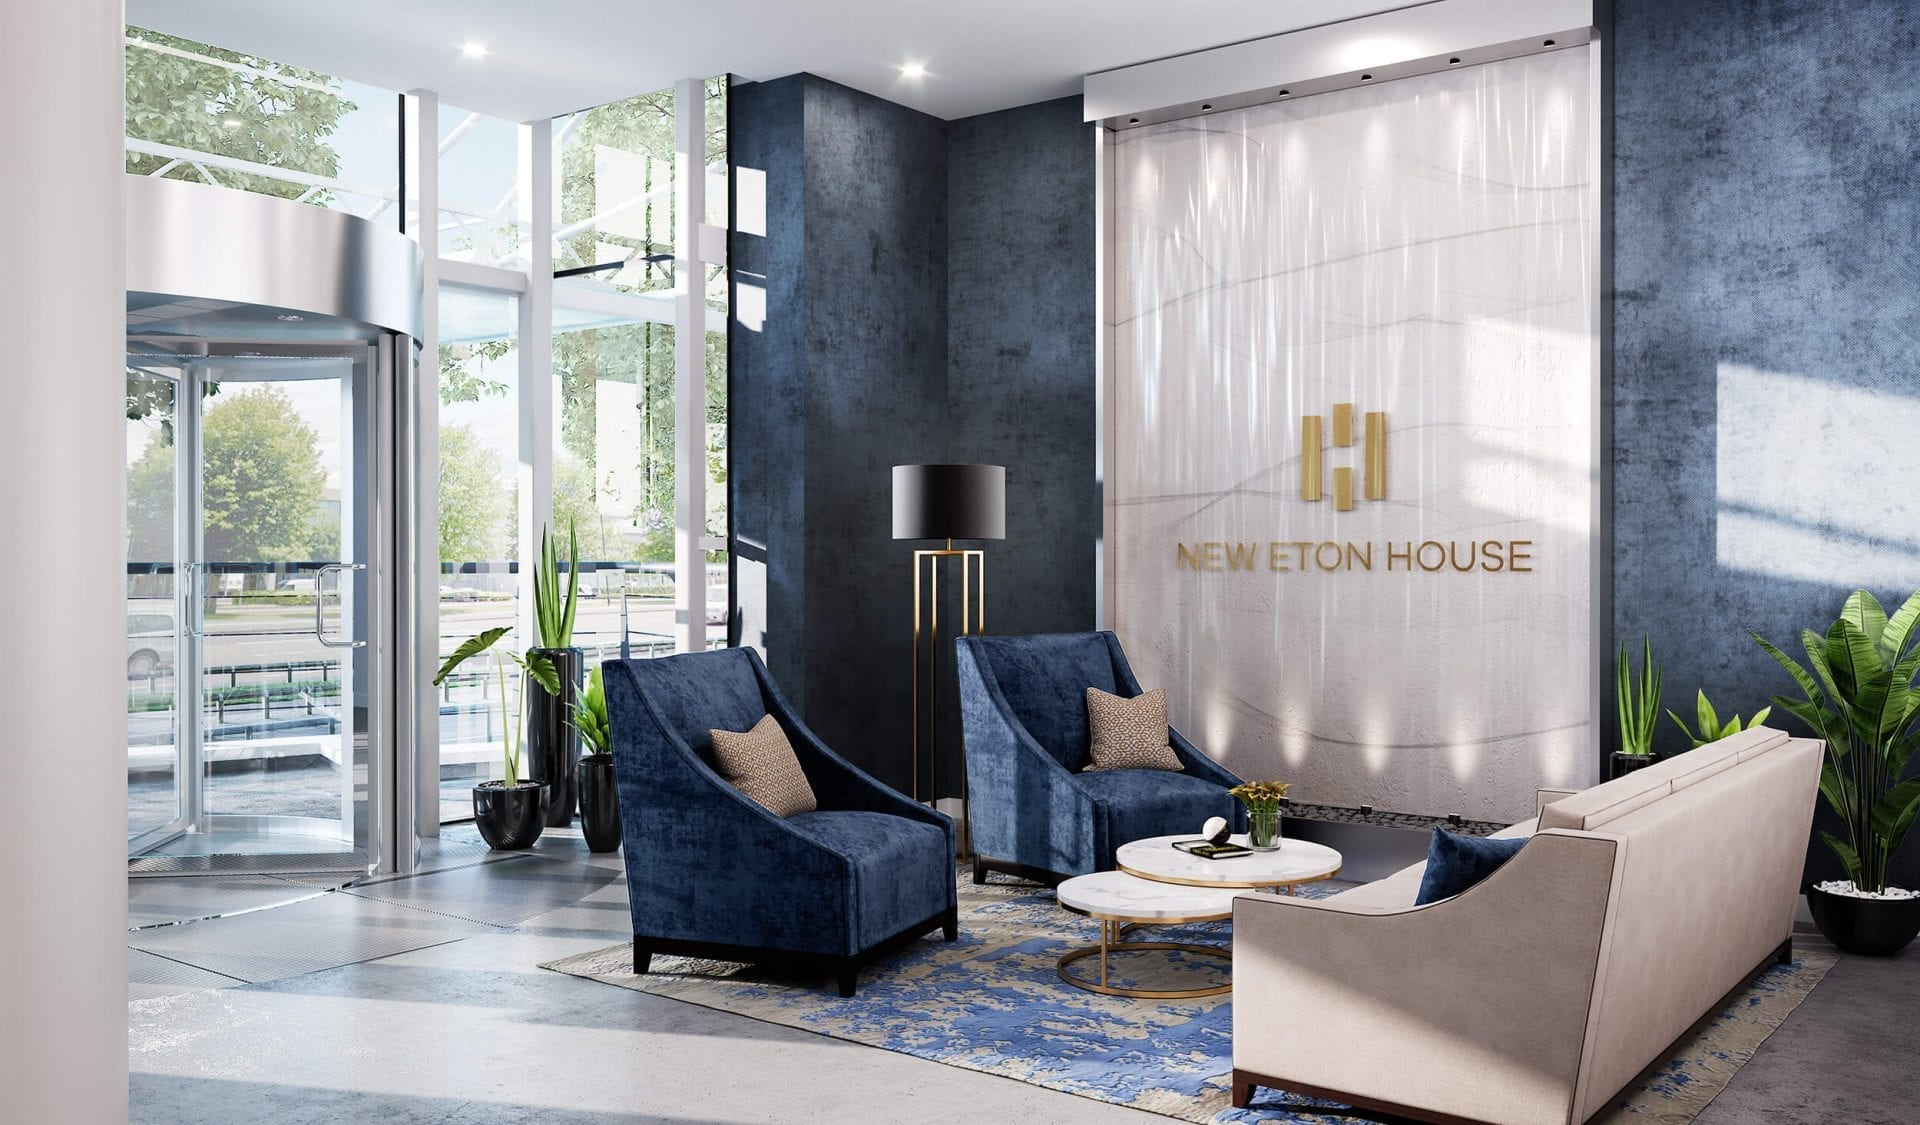 Lobby New Eton House - luxury apartments in Slough